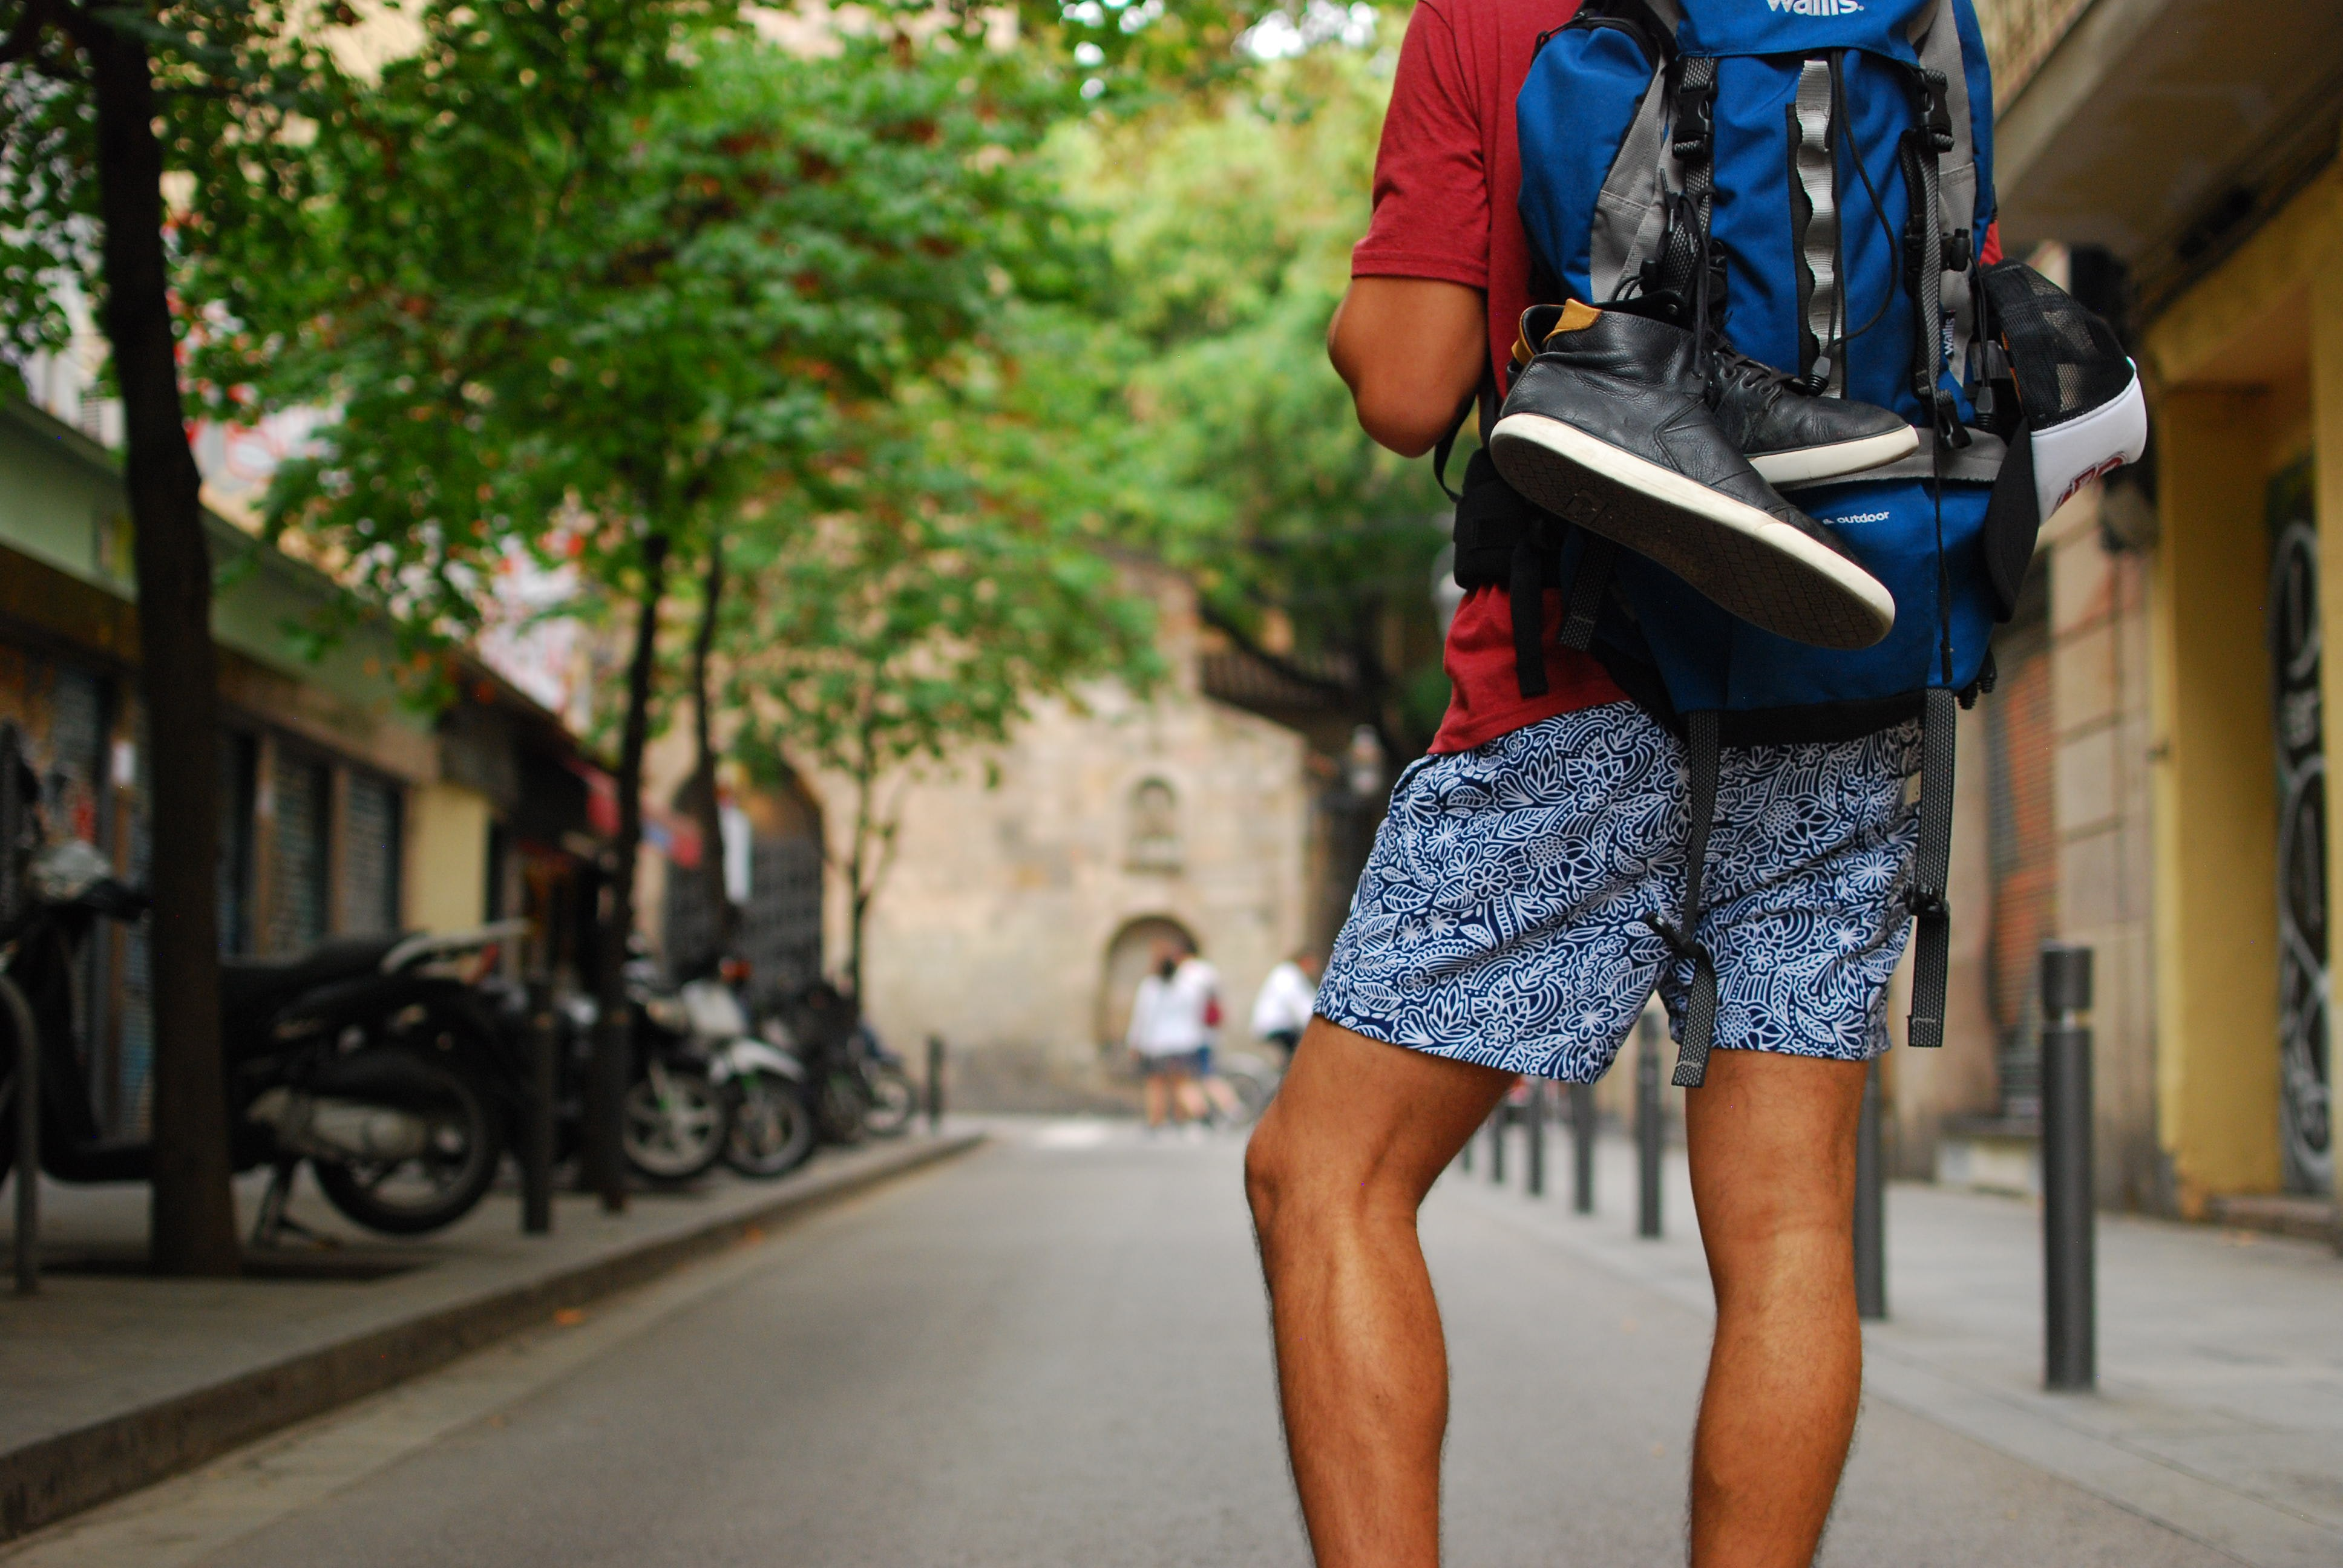 man standing on street carrying backpack